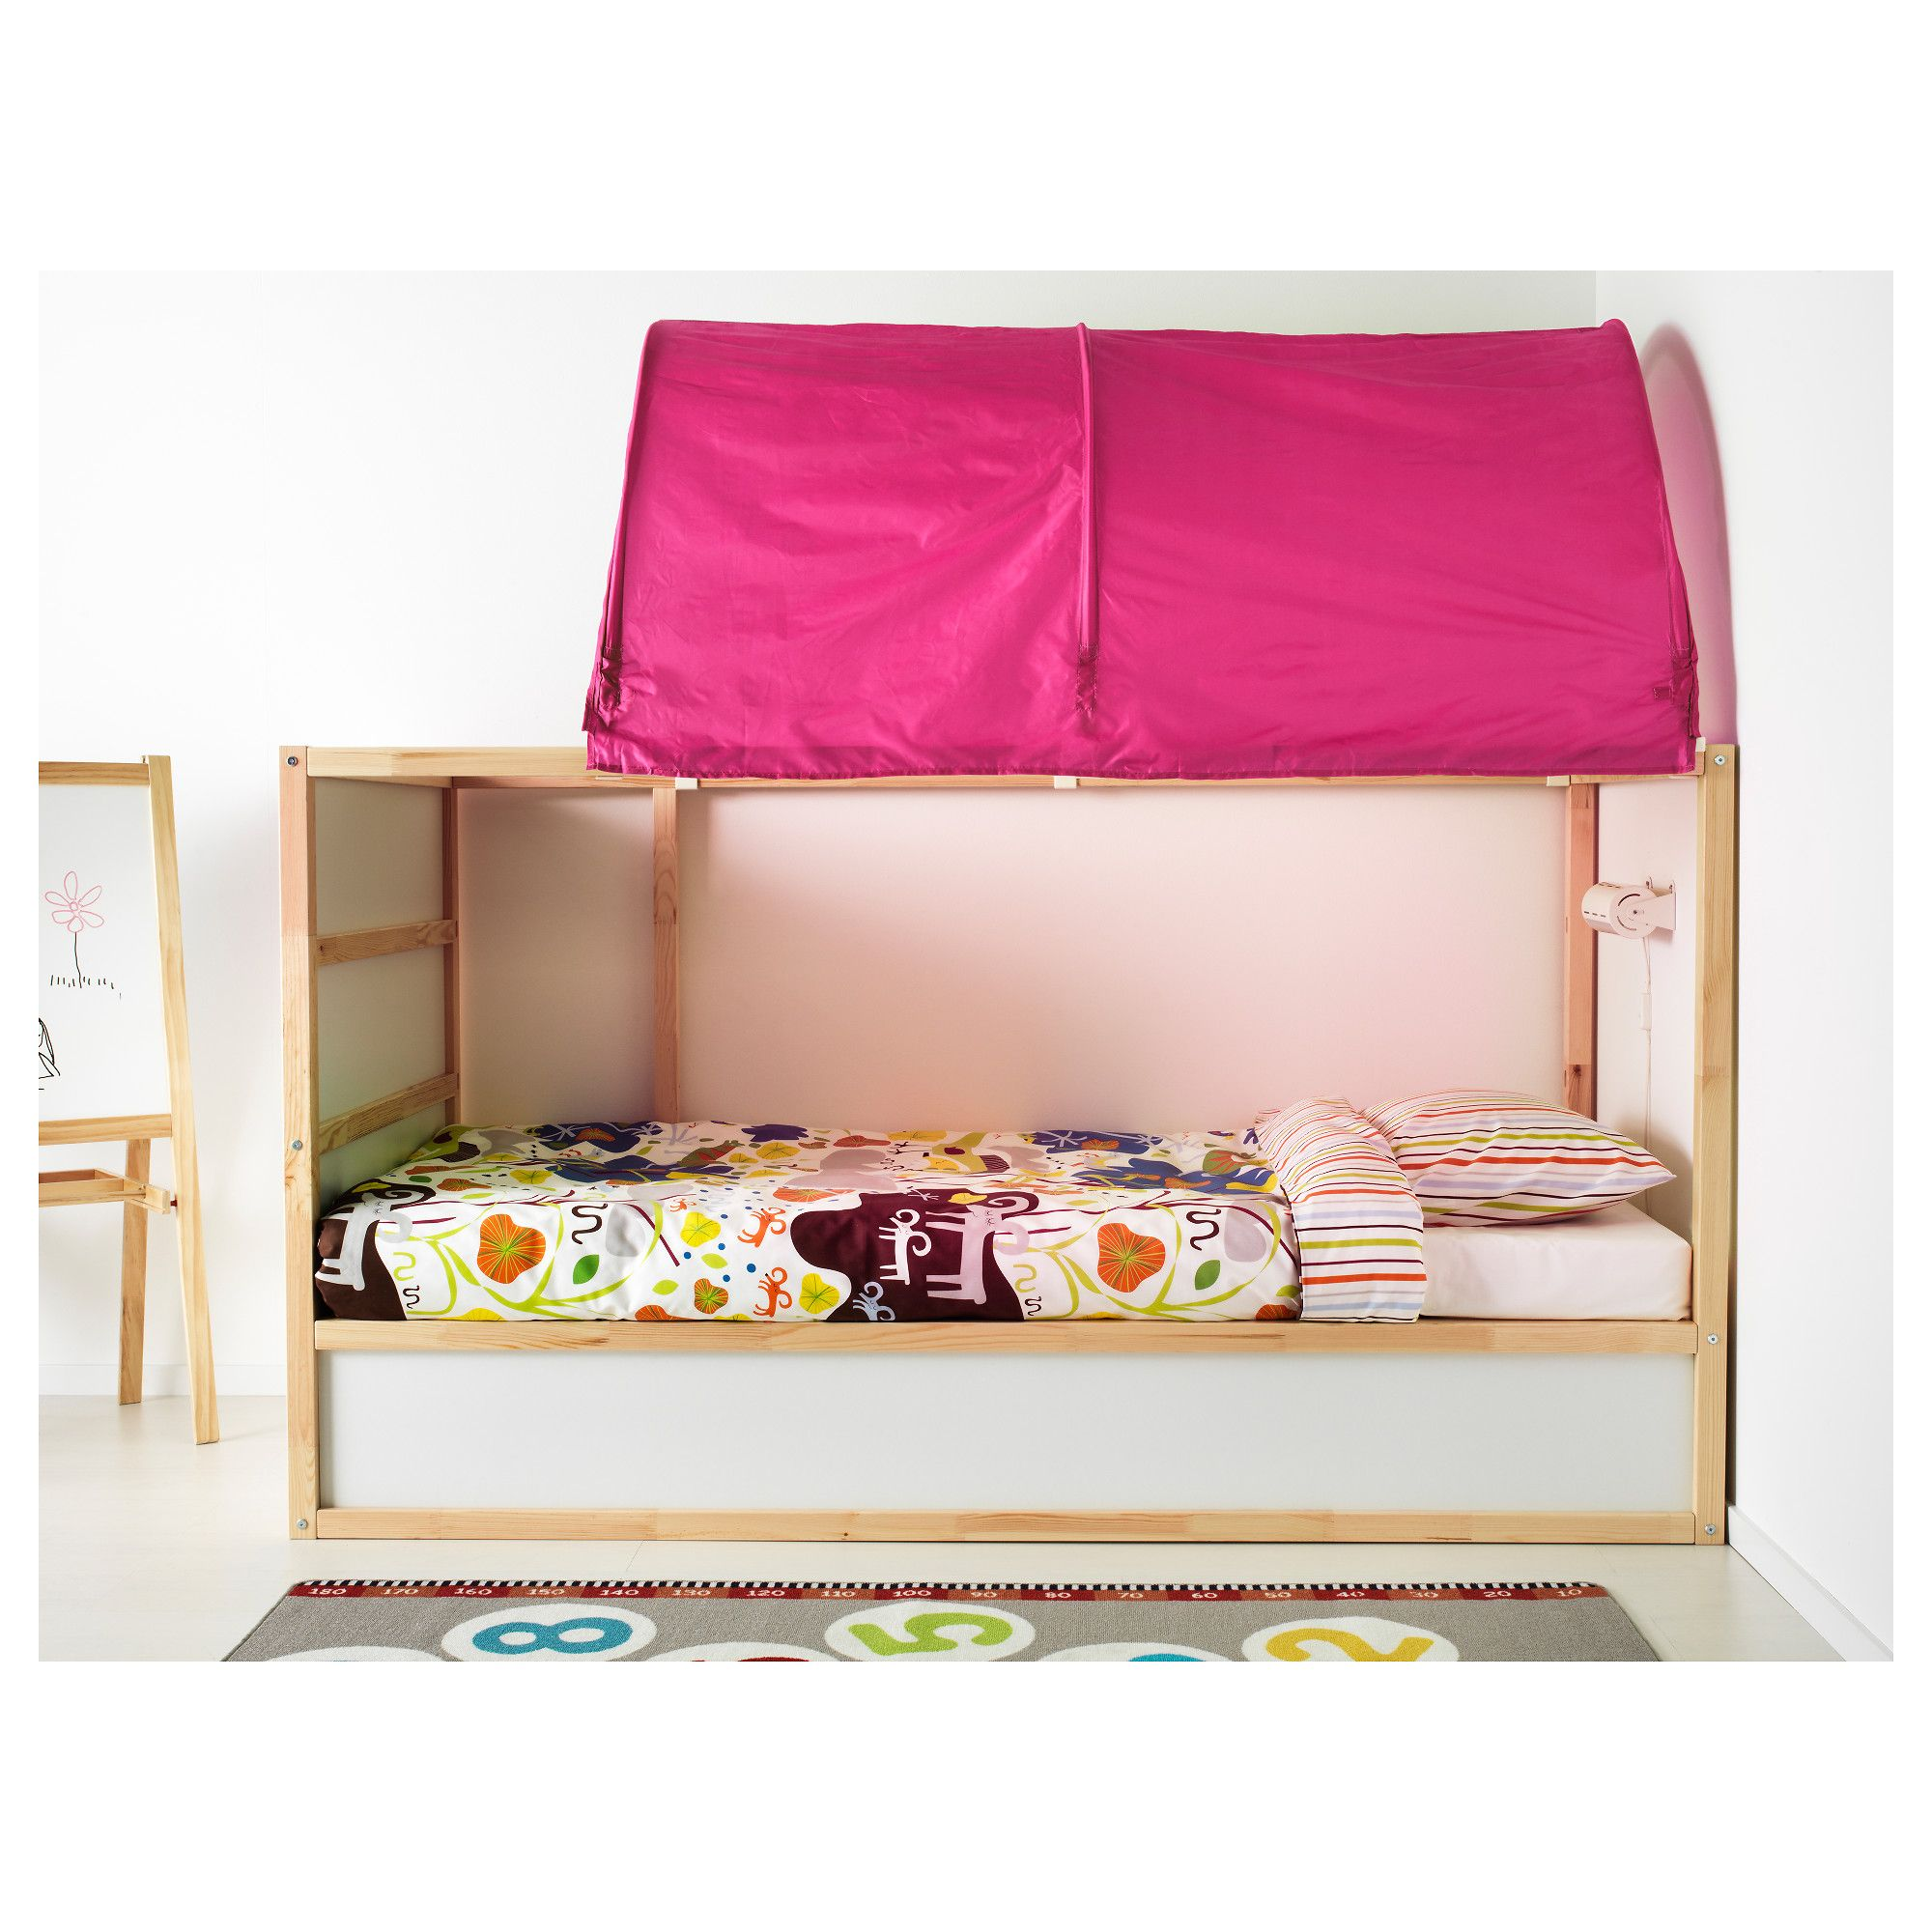 Ikea Kura Bed Tent Pink In 2019 Products Bed Tent